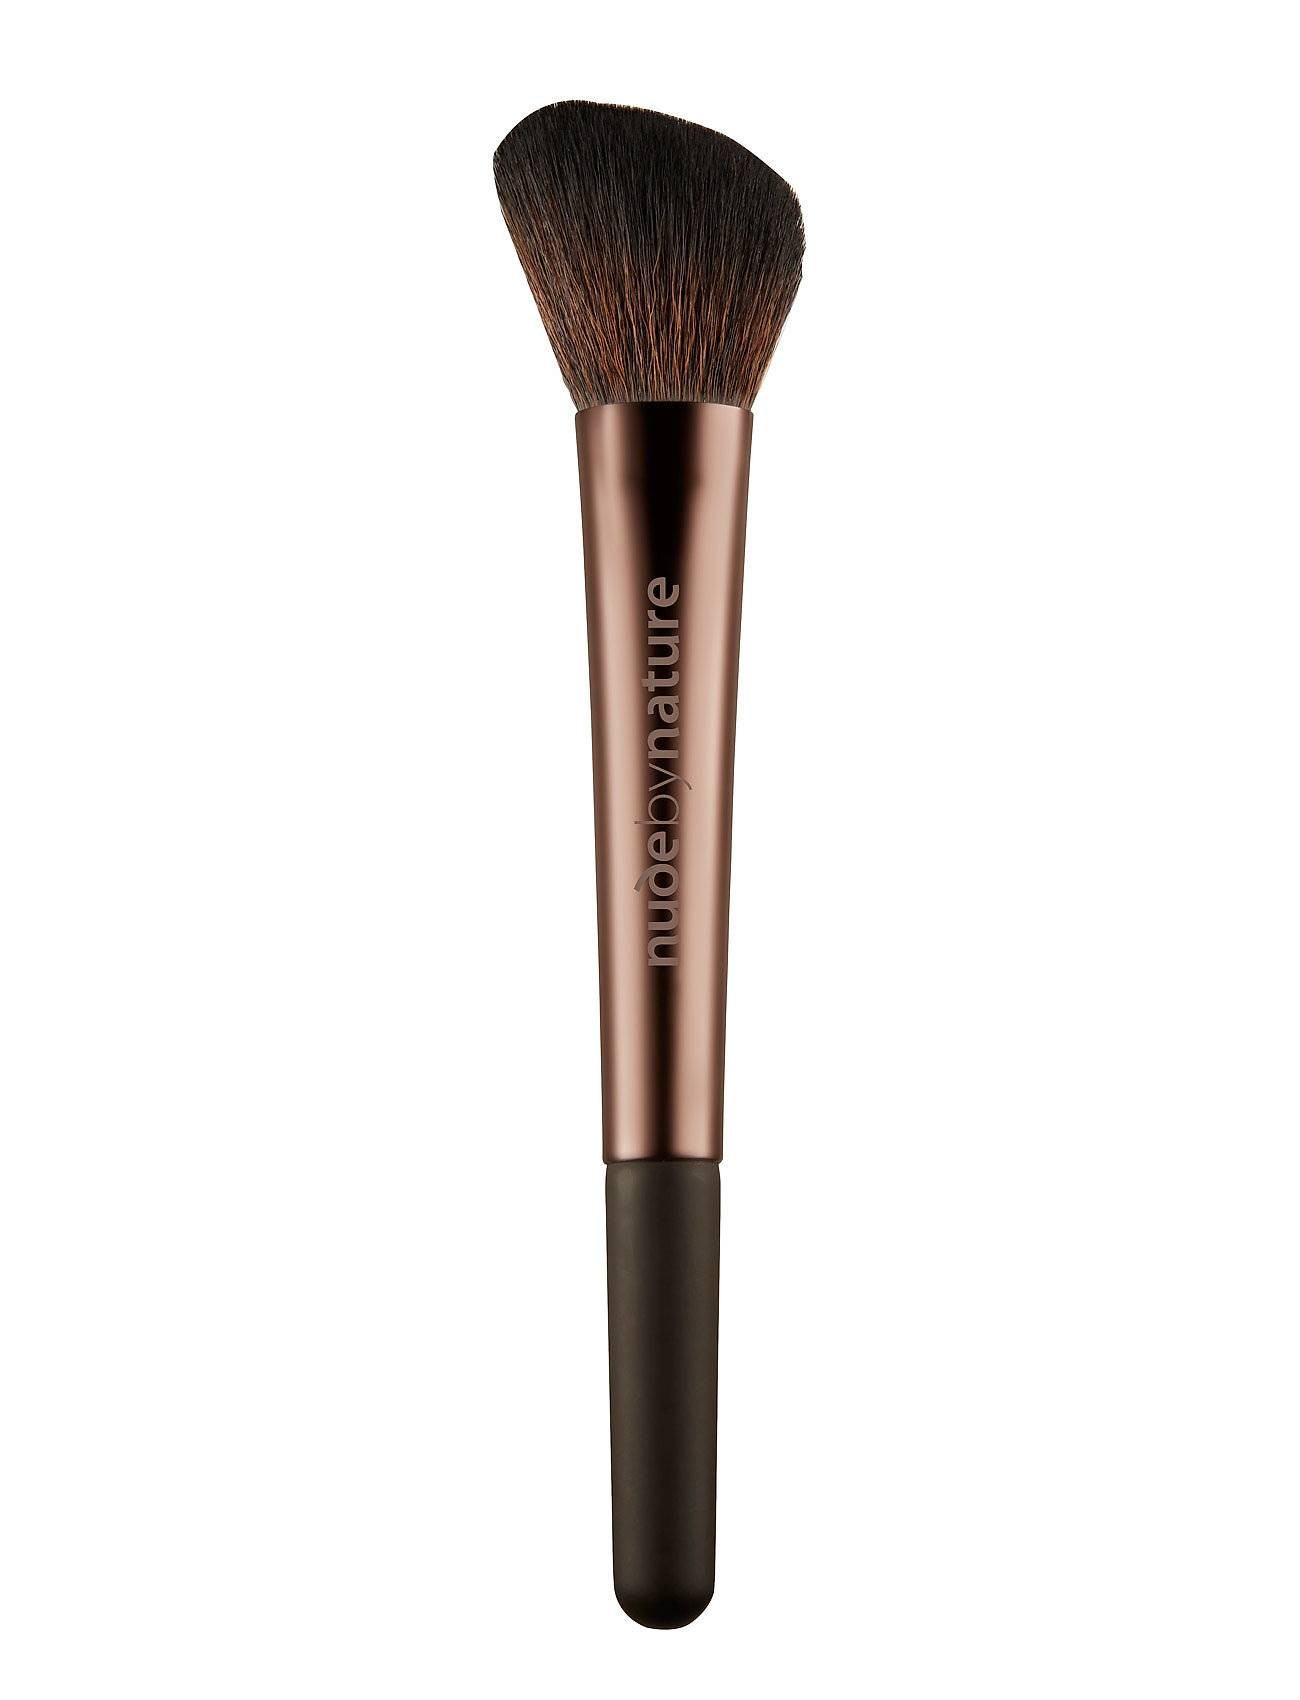 Nude by Nature Brushes 06 Angled Blush Brush Beauty WOMEN Makeup Makeup Brushes Face Brushes Nude Nude By Nature